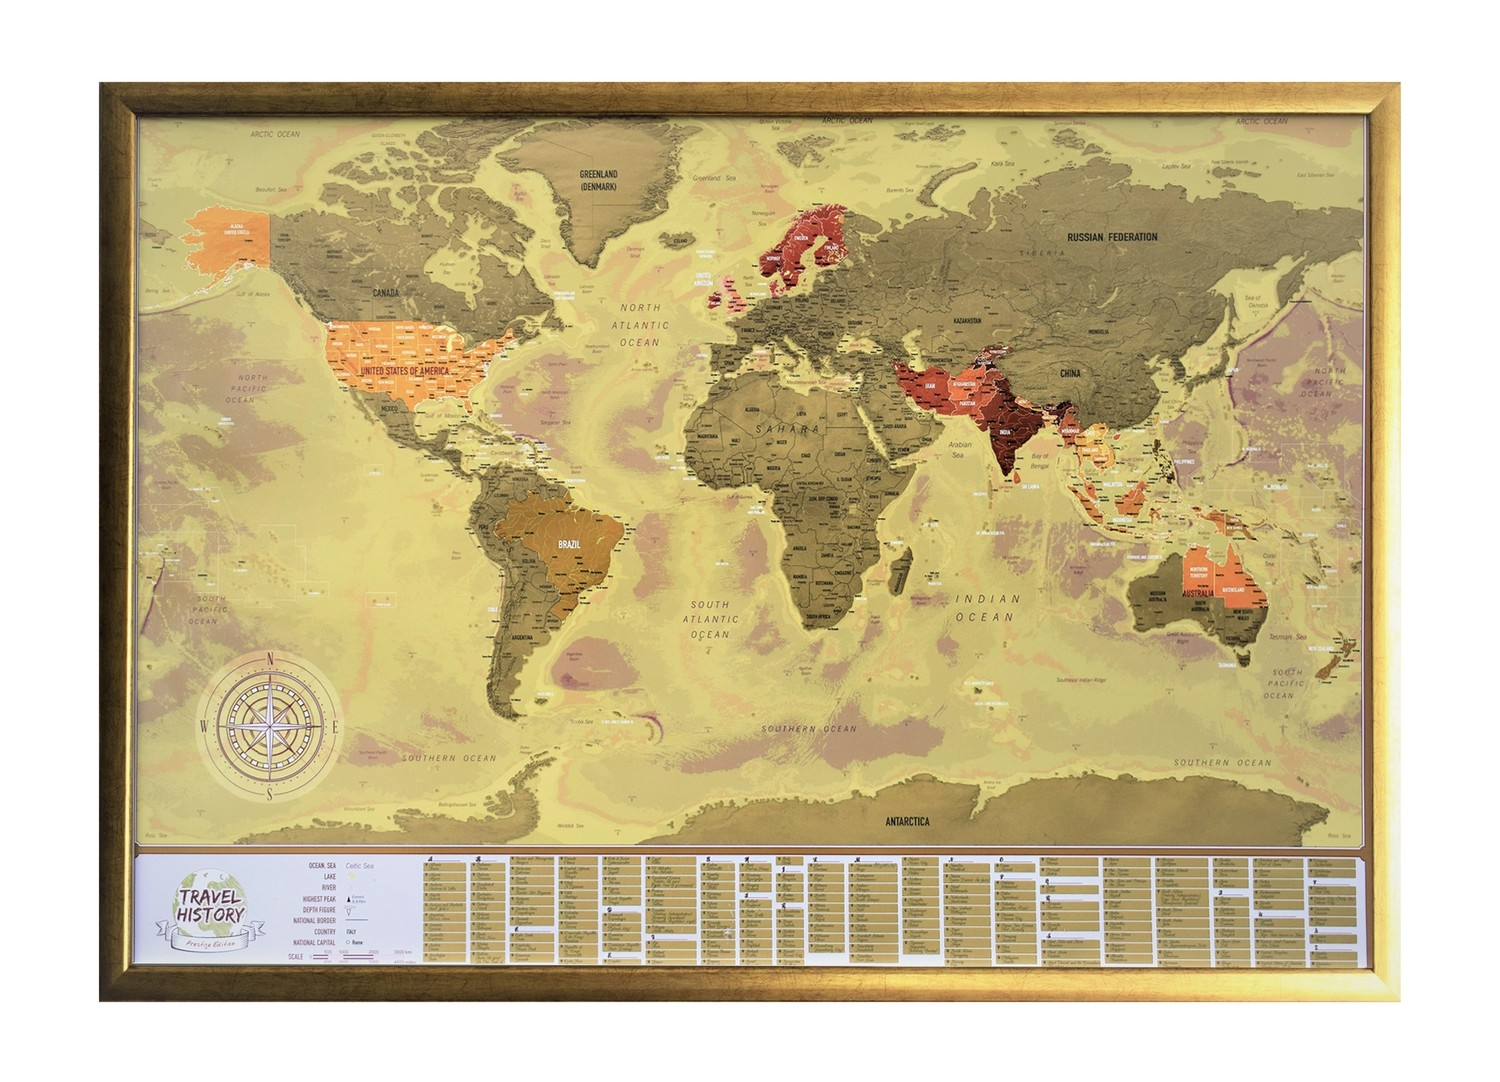 Framed Vintage Scratch off World Map with Flags, Best Personalized Gift for Friend, High Quality Product, Made in EU